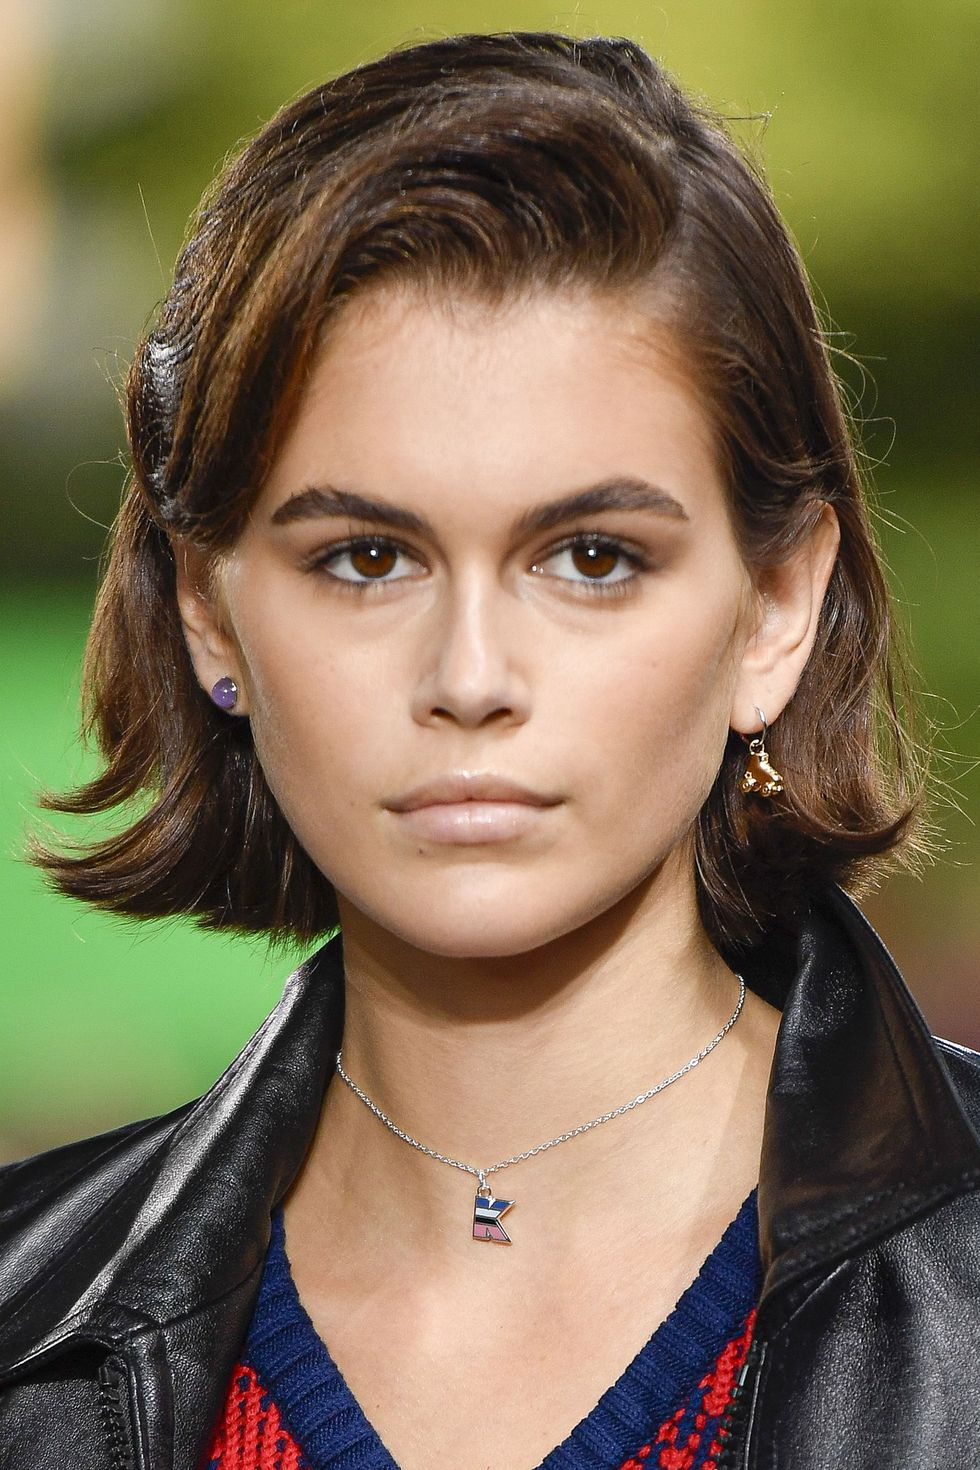 6 spring/summer 2020 hair trends to try now Hair trends